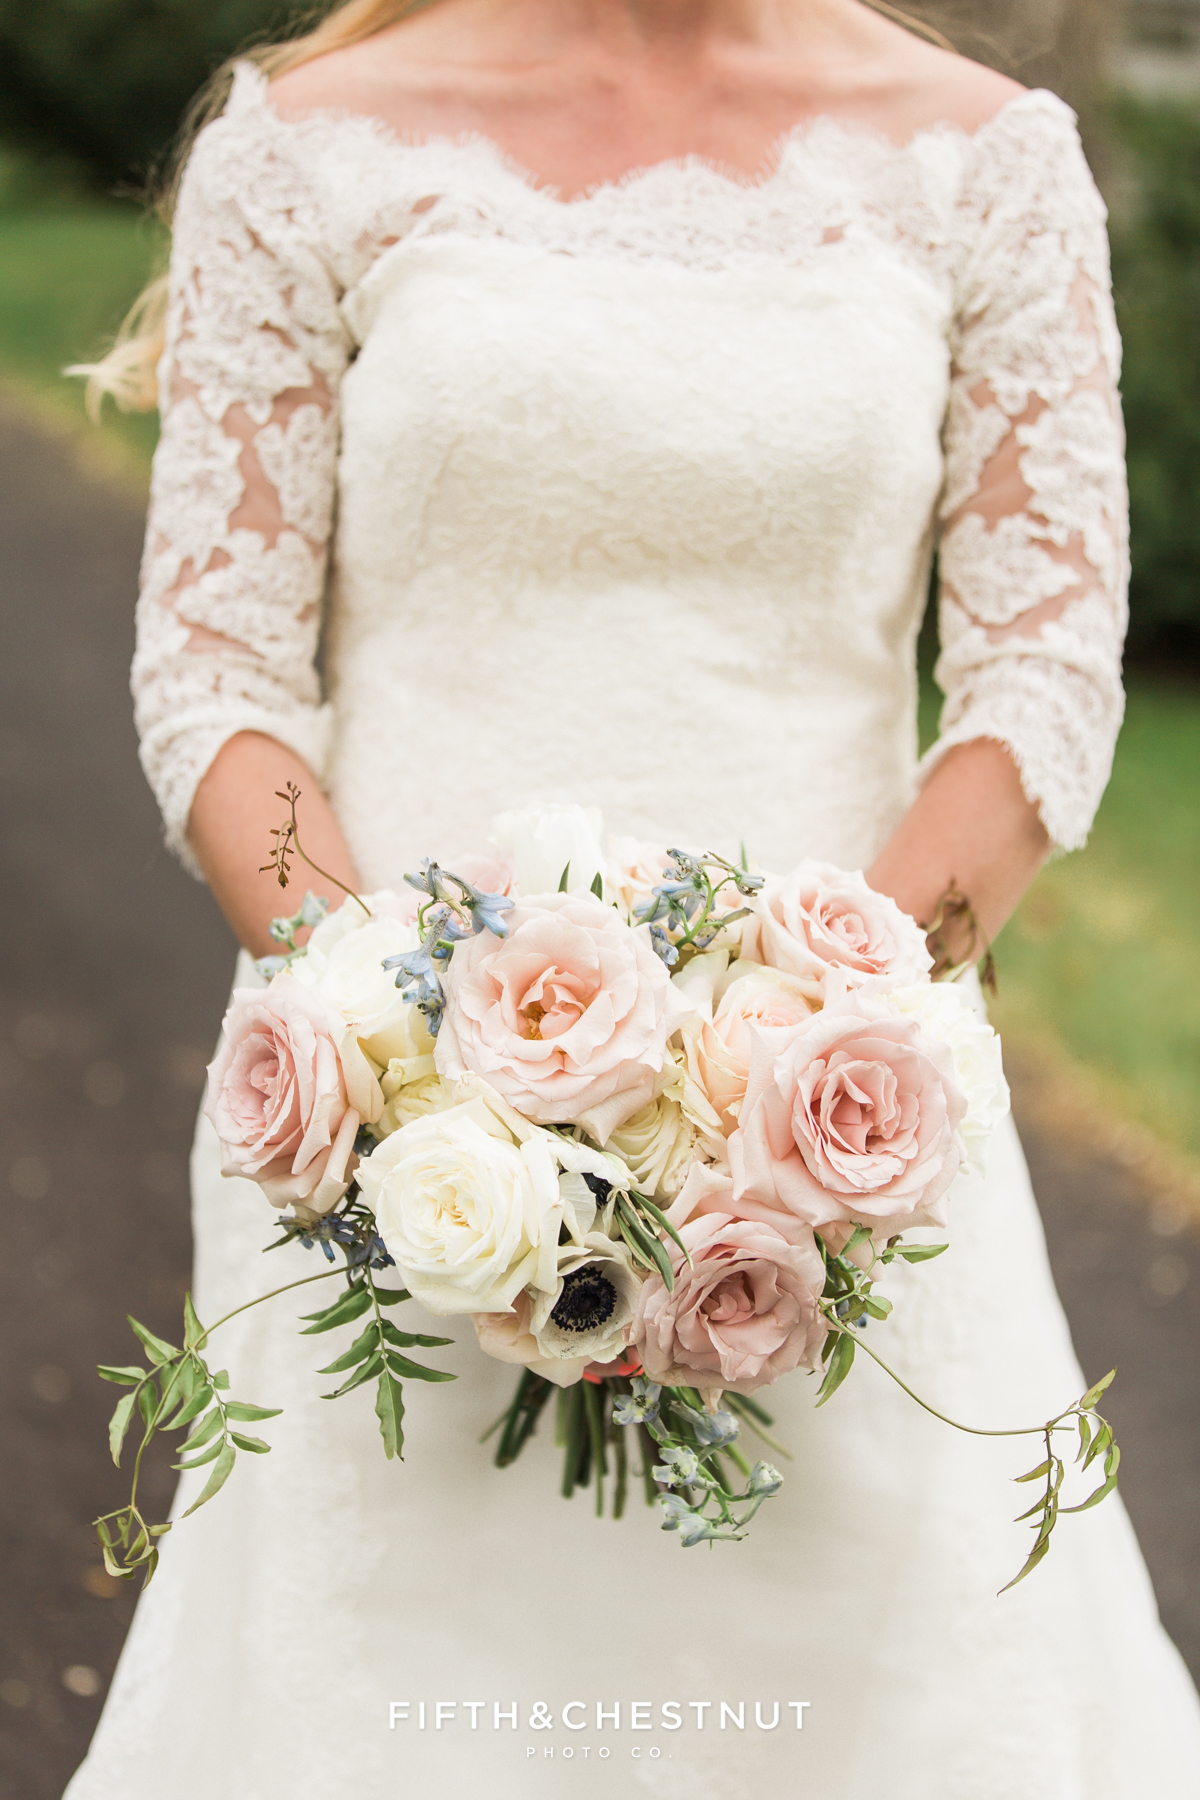 Bride in a lace wedding dress showing off her country french bouquet for a dusty blue wedding styled shoot